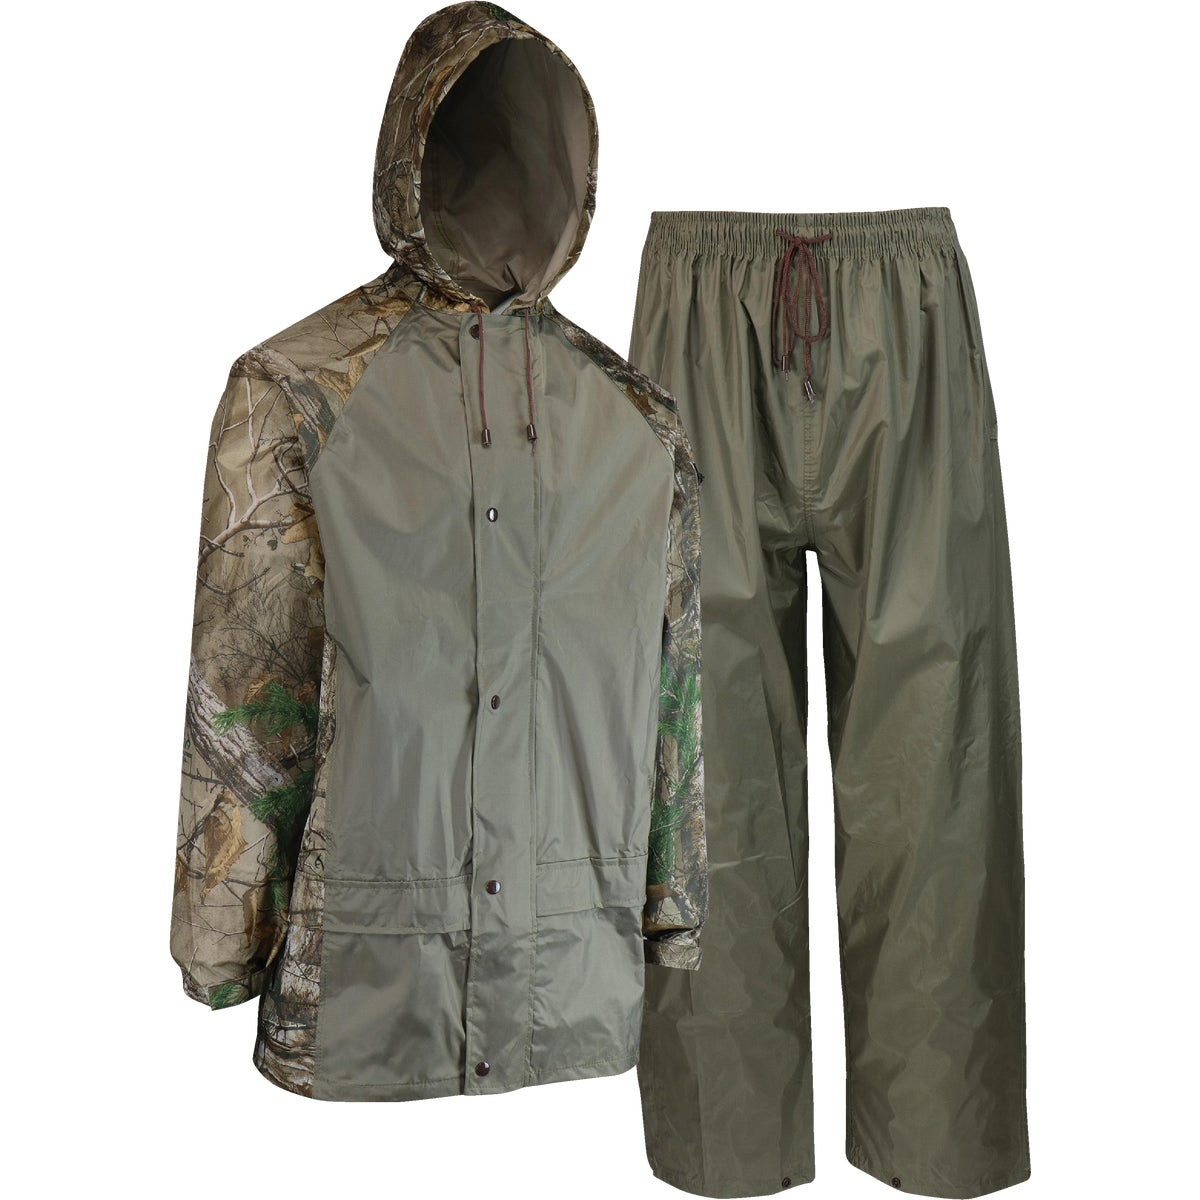 West Chester 2-Piece RealTree Camo Rain Suit, RE46200/3XL